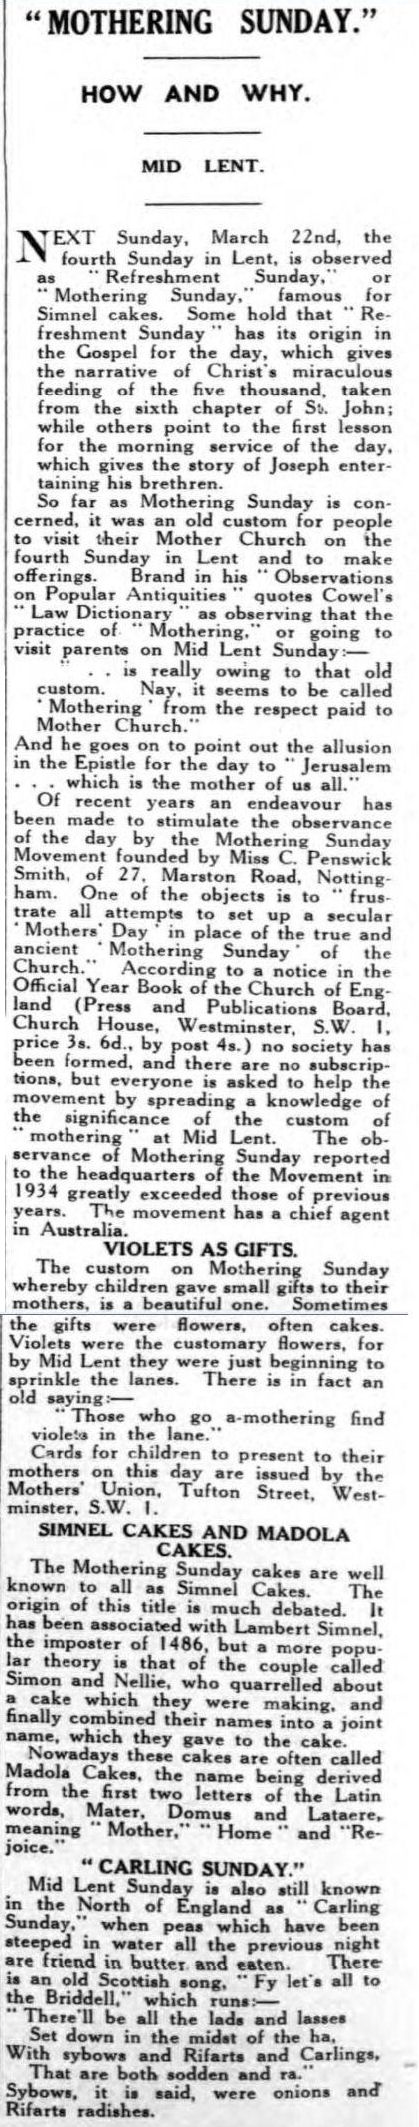 newspaper report on mothering sunday